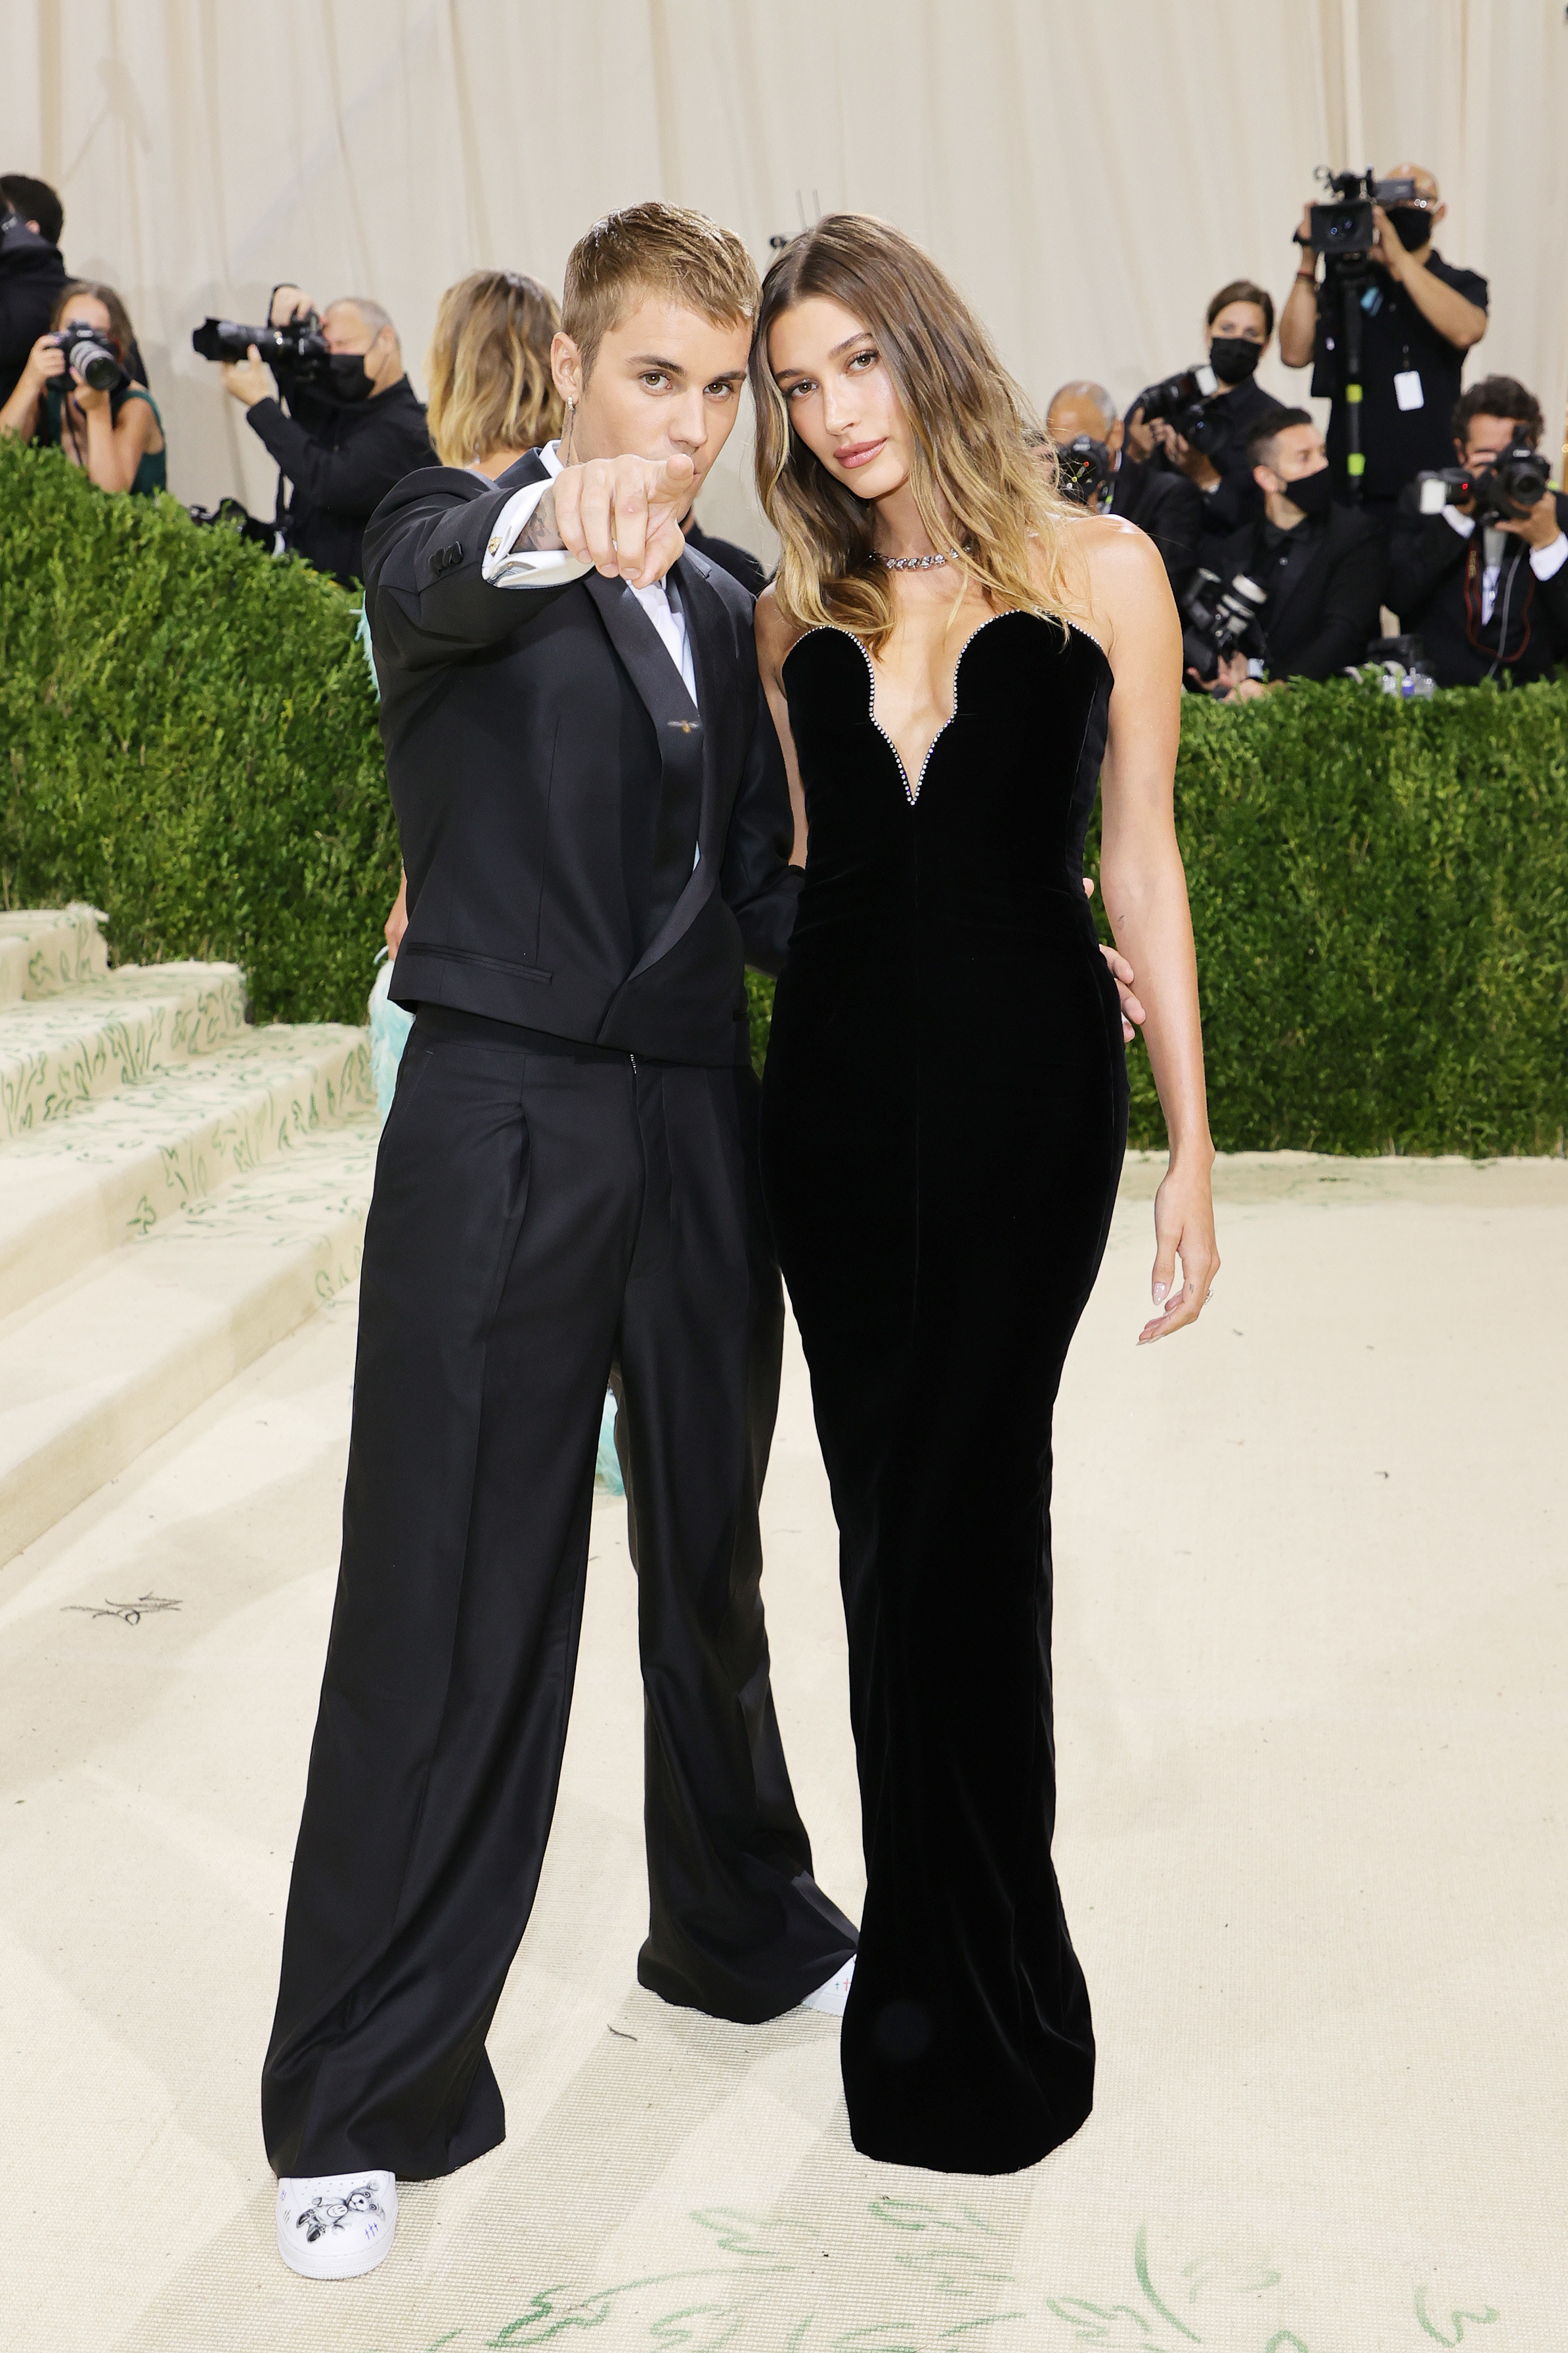 Justin Beiber and Hailey Bieber on the The 2021 Met Gala white carpet.